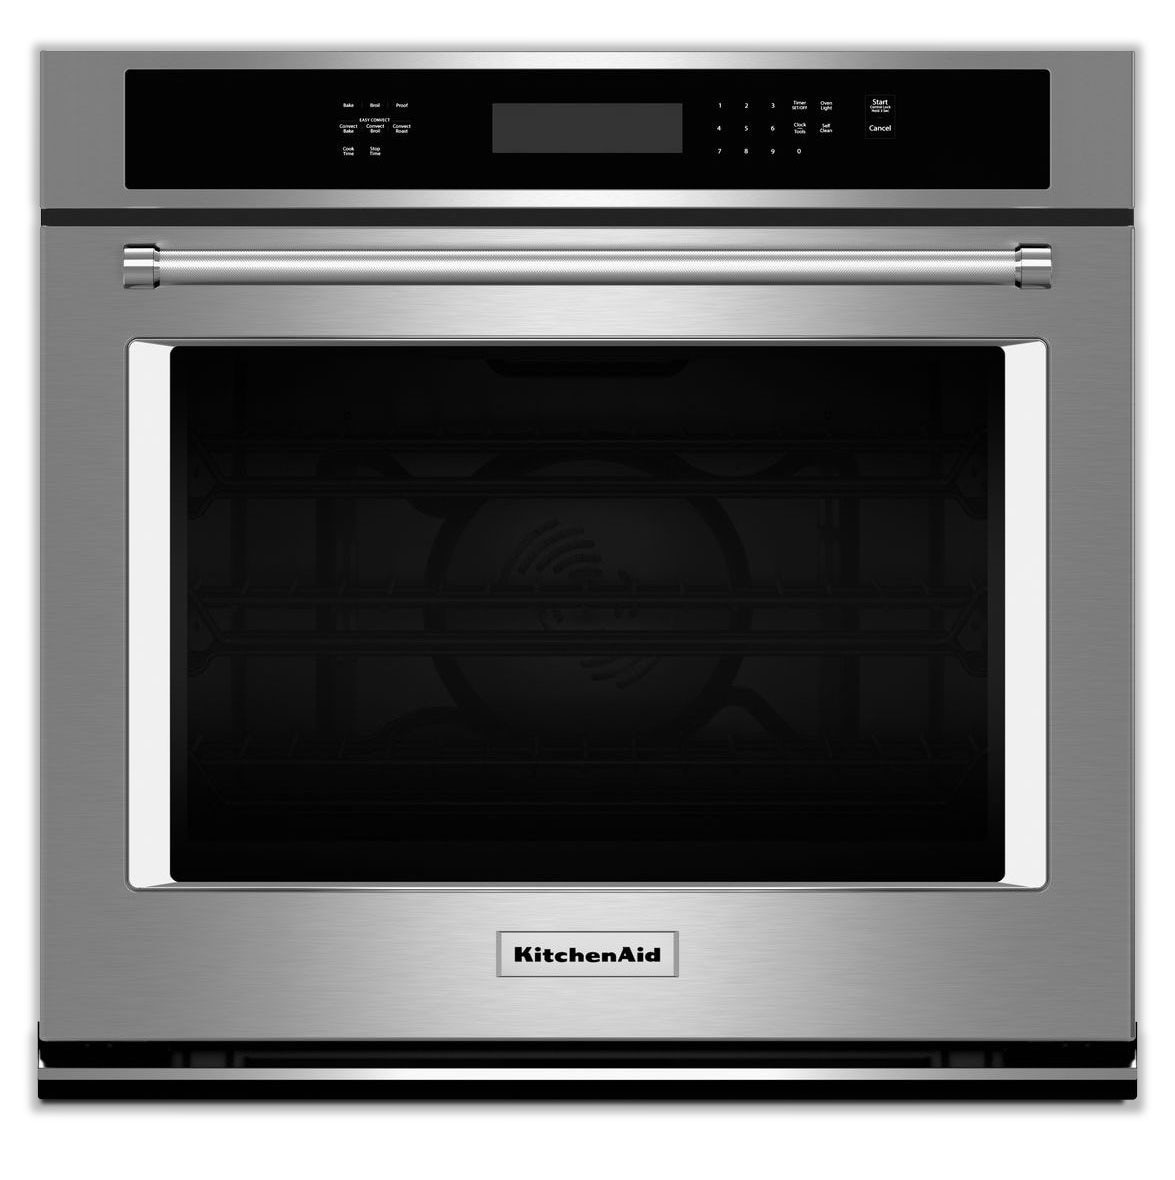 Cooking Products - KitchenAid Stainless Steel Convection Wall Oven (5 Cu. Ft.) - KOSE500ESS